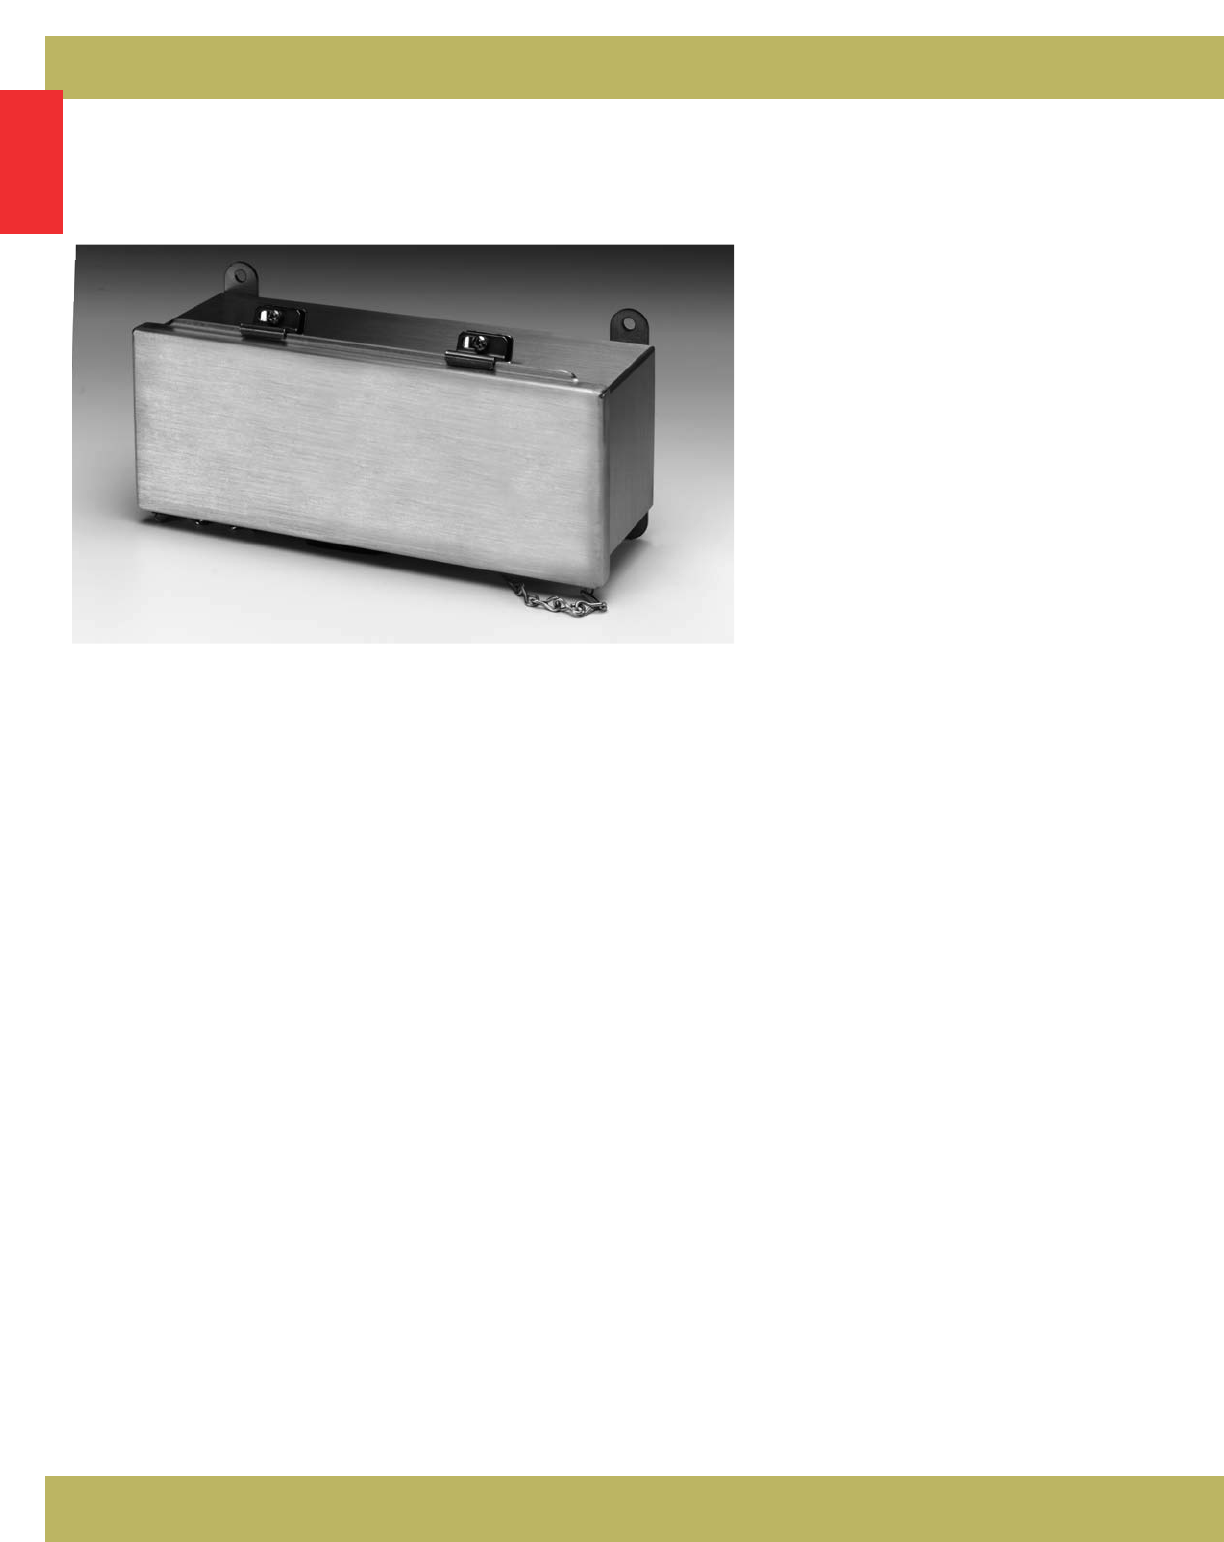 Cooper B Line Electrical Enclosures Wireway 1000509046 Catalog 1 Wiring Trough Nema 4x Lift Off Cover